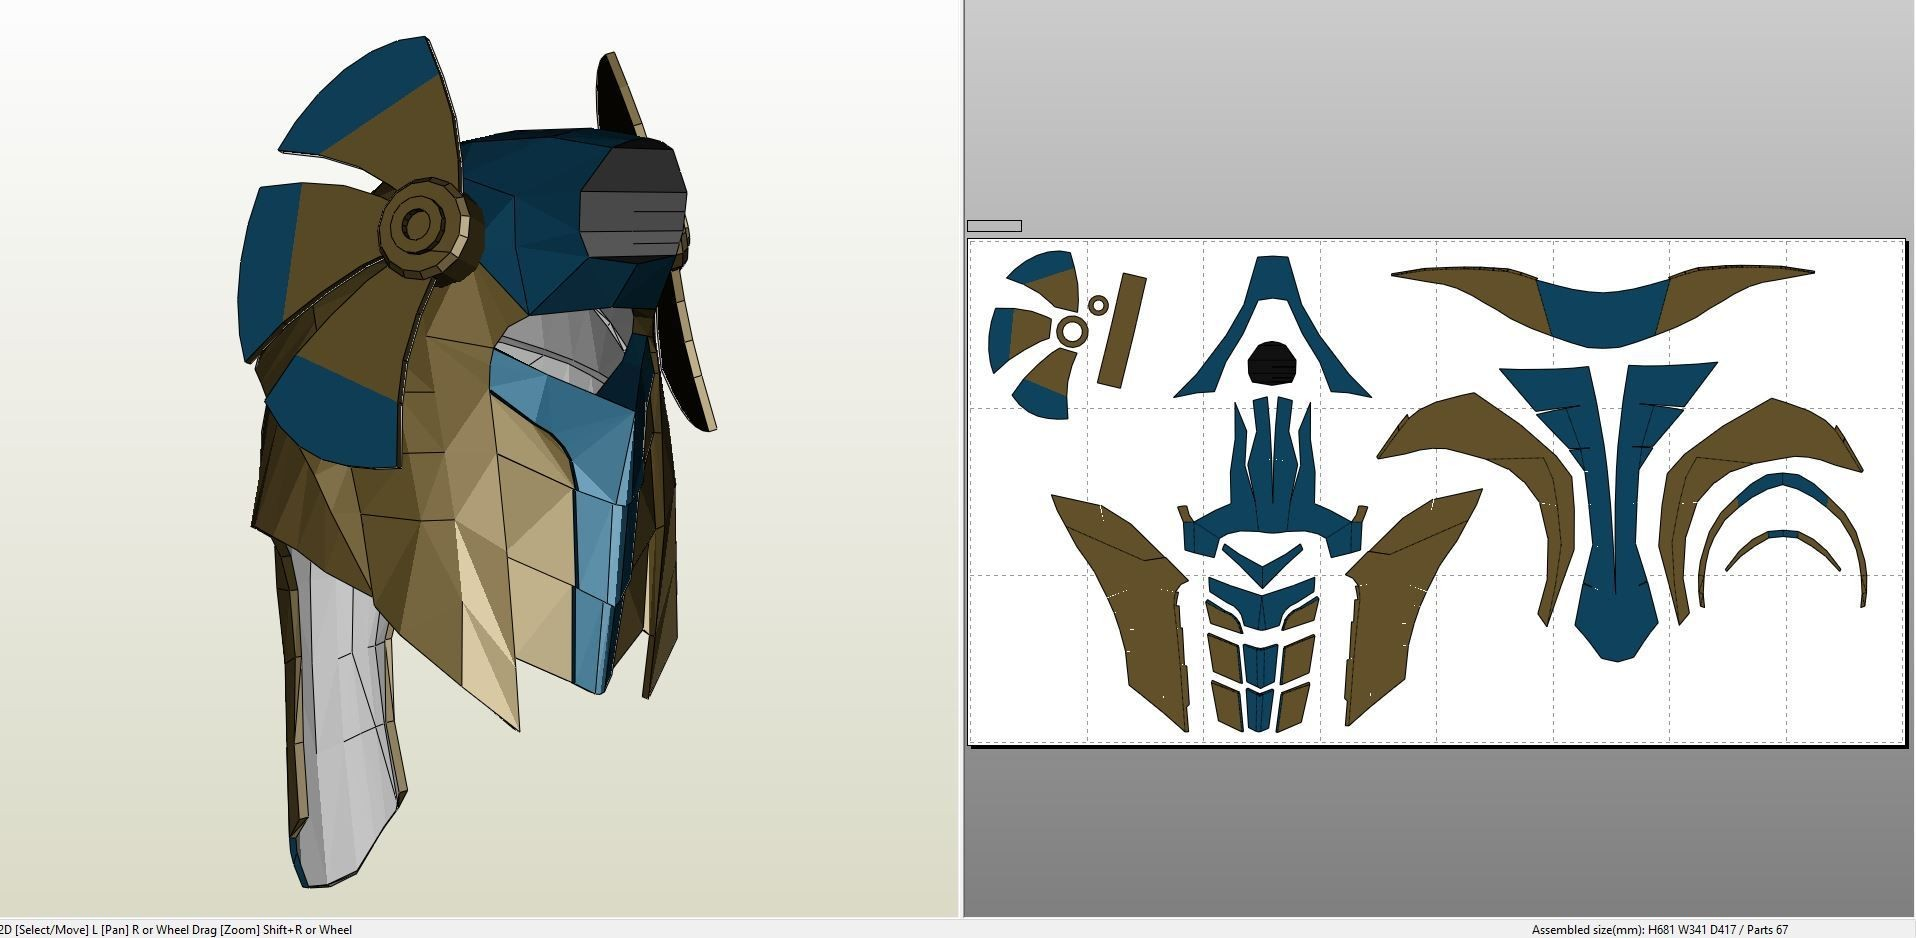 Yugioh Papercraft Papercraft Pdo File Template for Doktor who Cyberslave Helmet